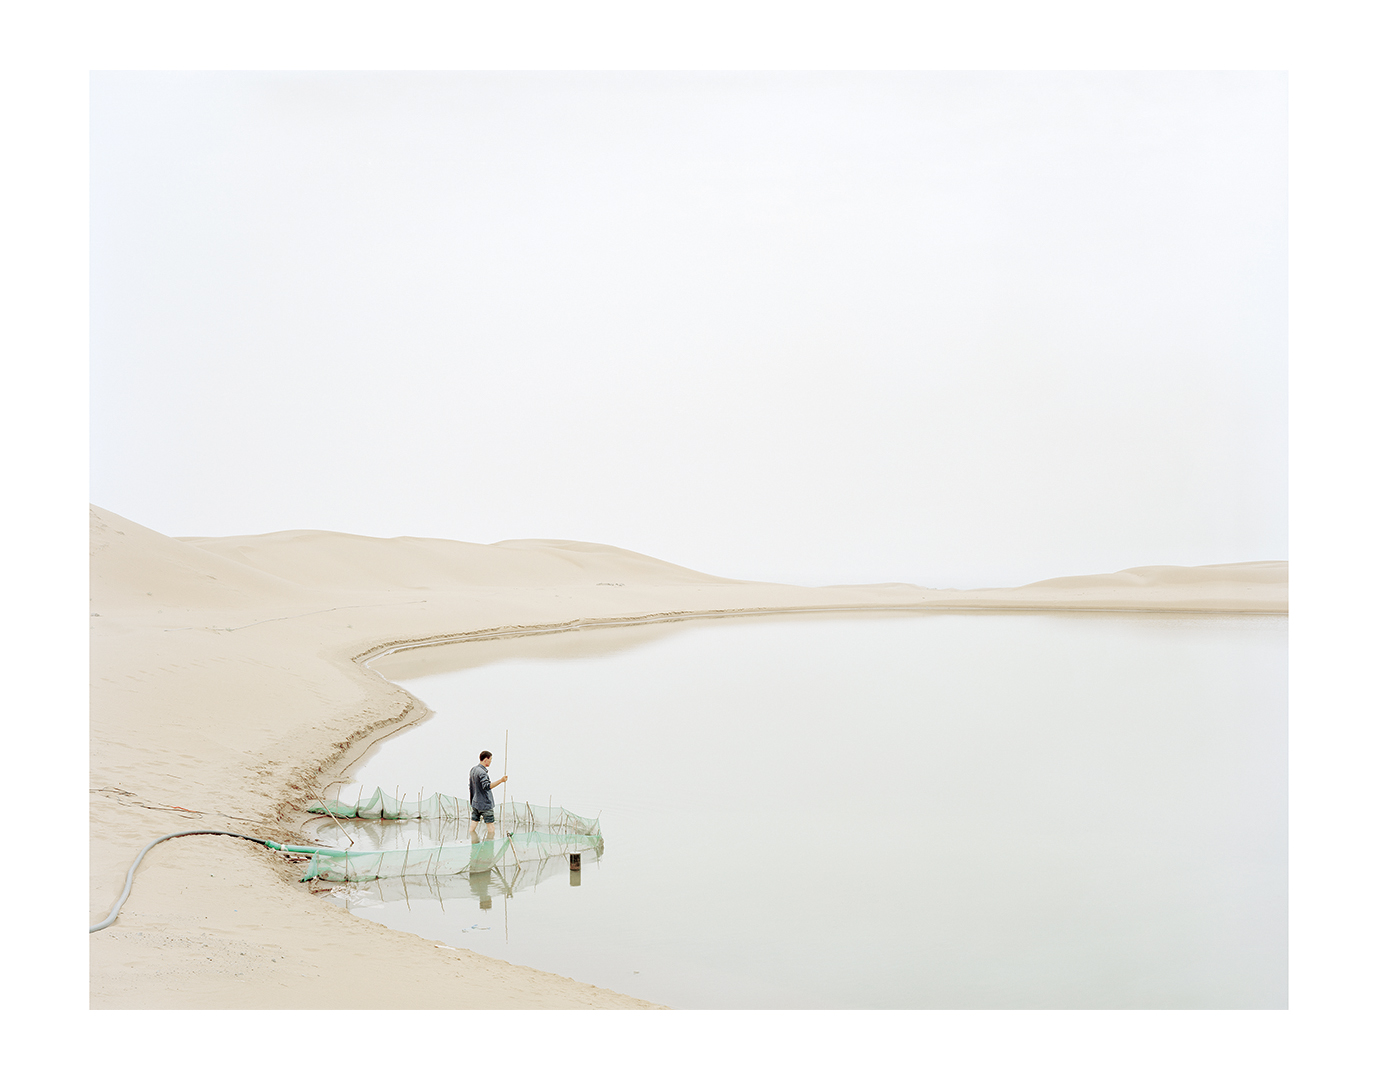 zhang kechun the yellow river  burn magazine if it s colorful or gloomy if it s only an imagination and reality it always embraces people s life and fate joy and sorrow faith and hesitance